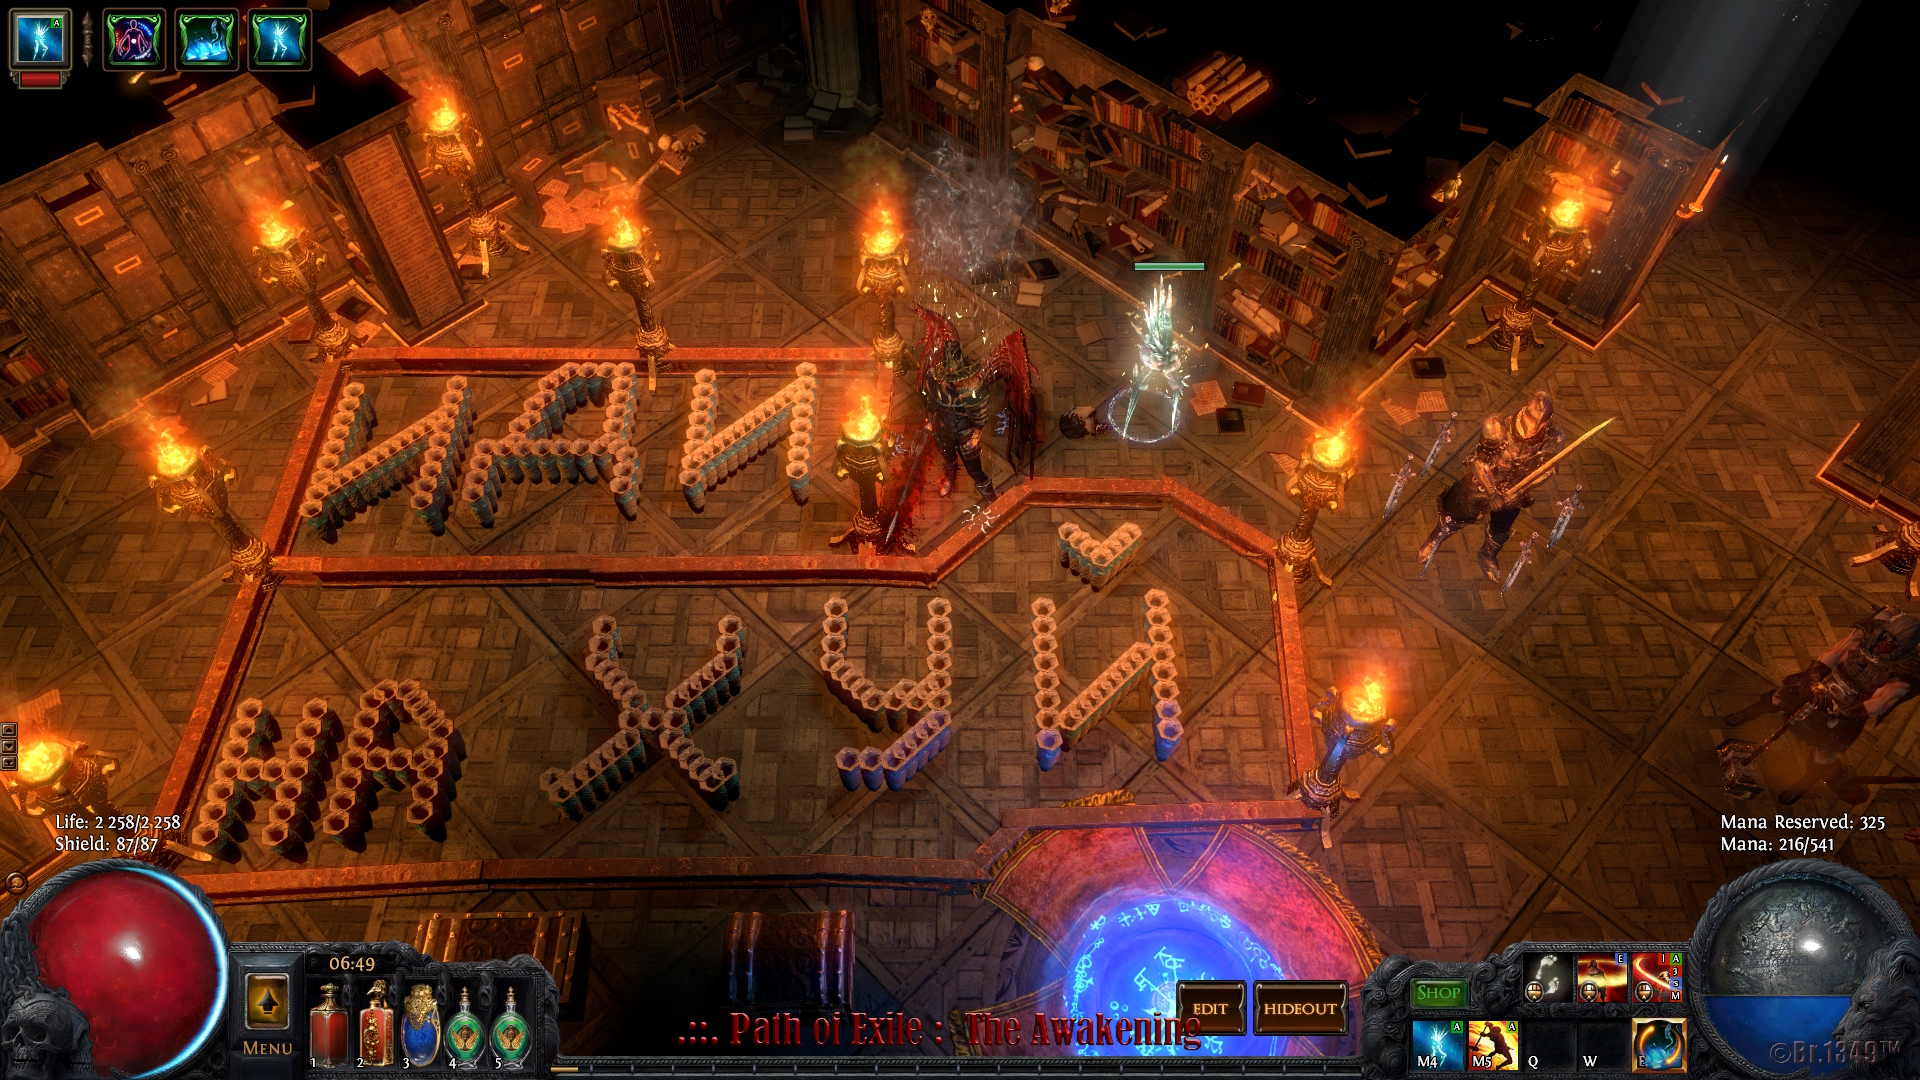 PathOfExile 2015-07-22 My HideOut - Path of Exile